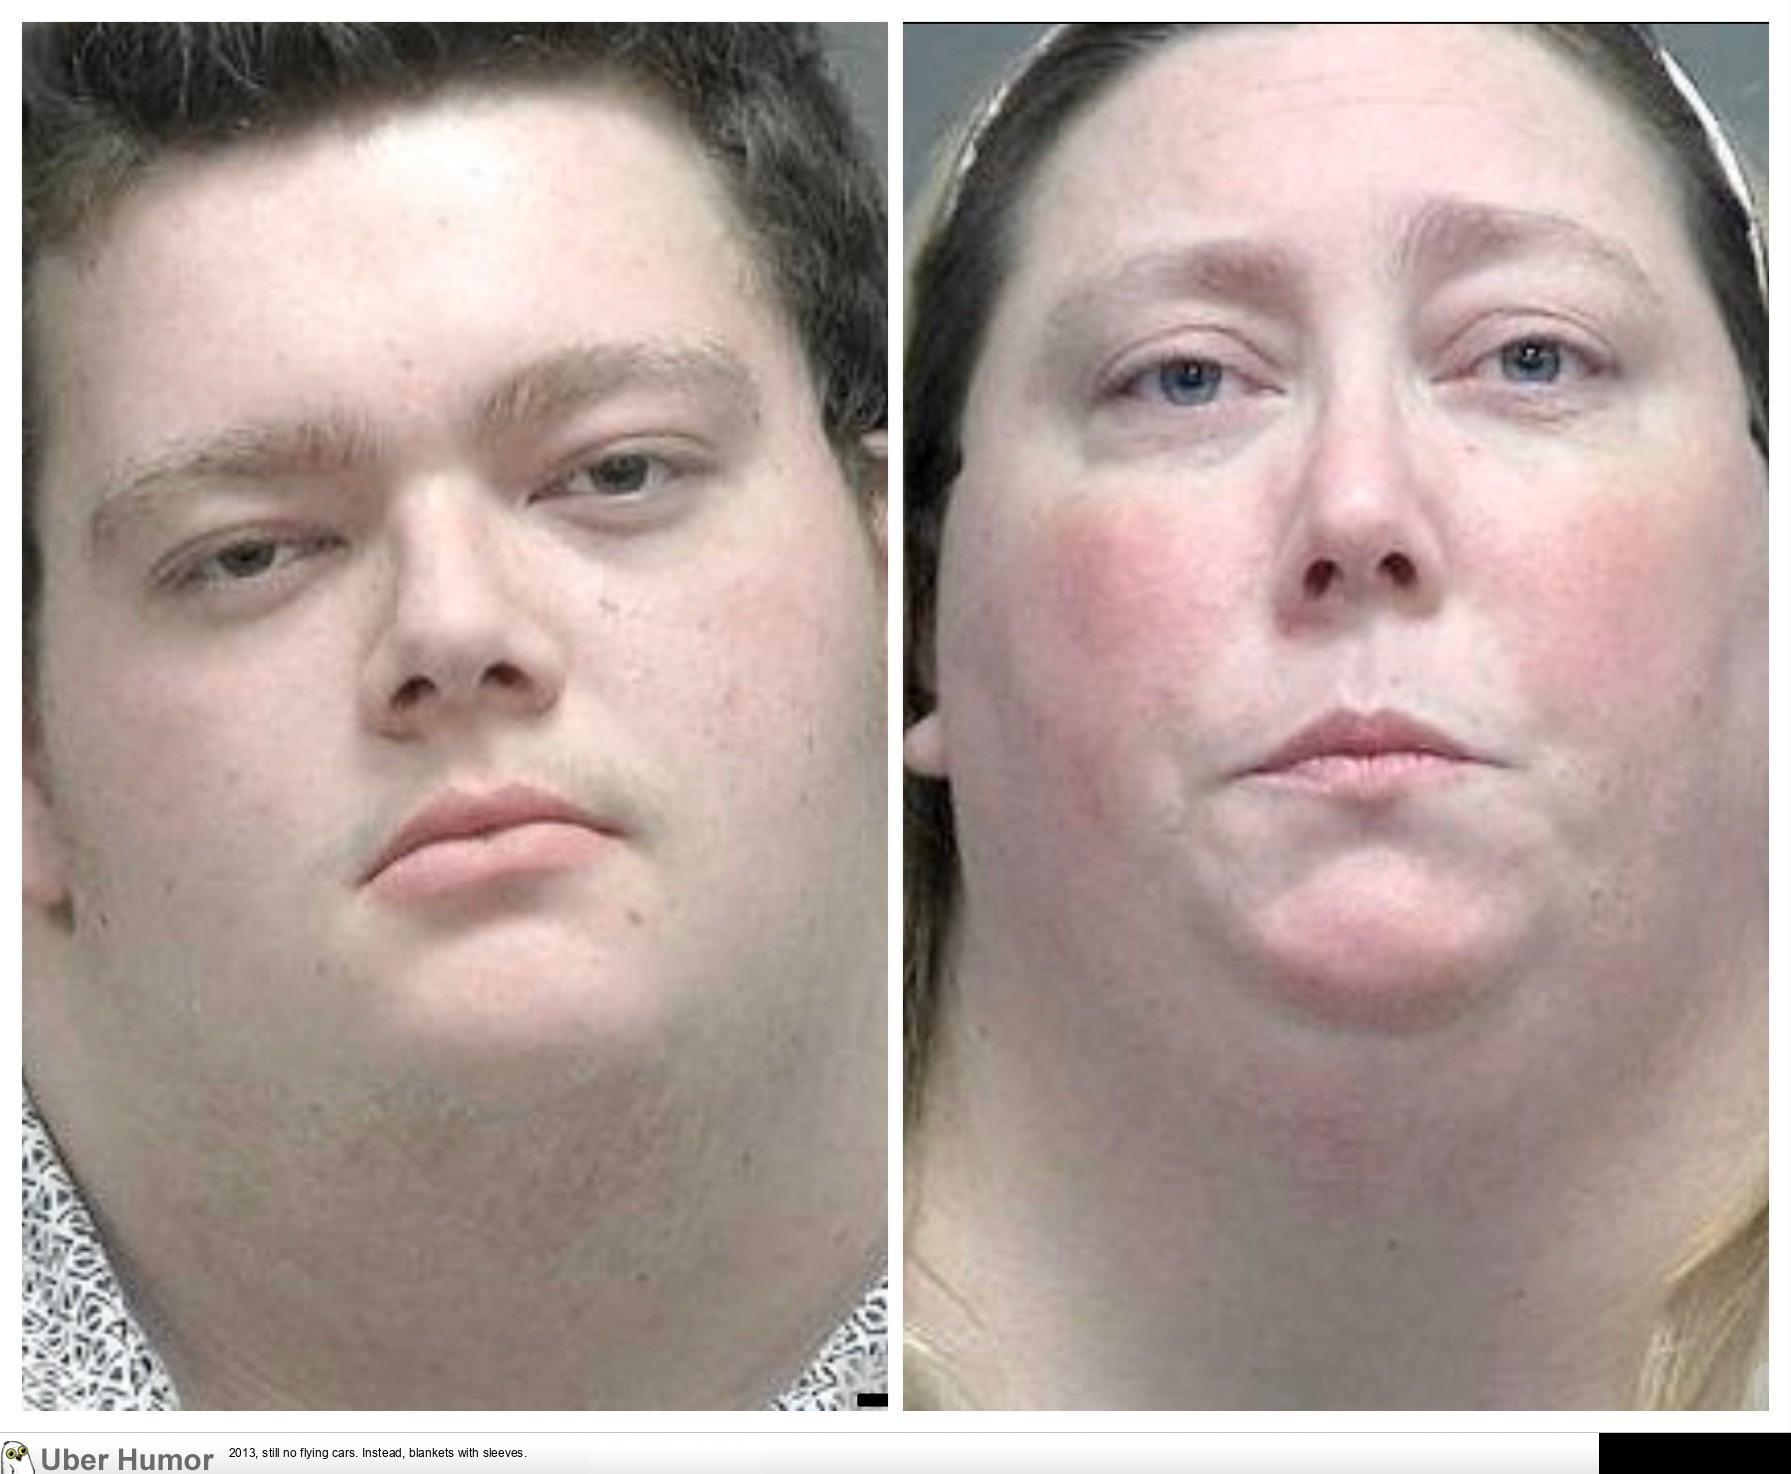 Local Son And Mother Were Arrested For Running A Drug House These Are Their Mugshots Genetics Are A Bitch Sometimes Funny Pictures Quotes Pics Photos Images Videos Of Really Very Cute